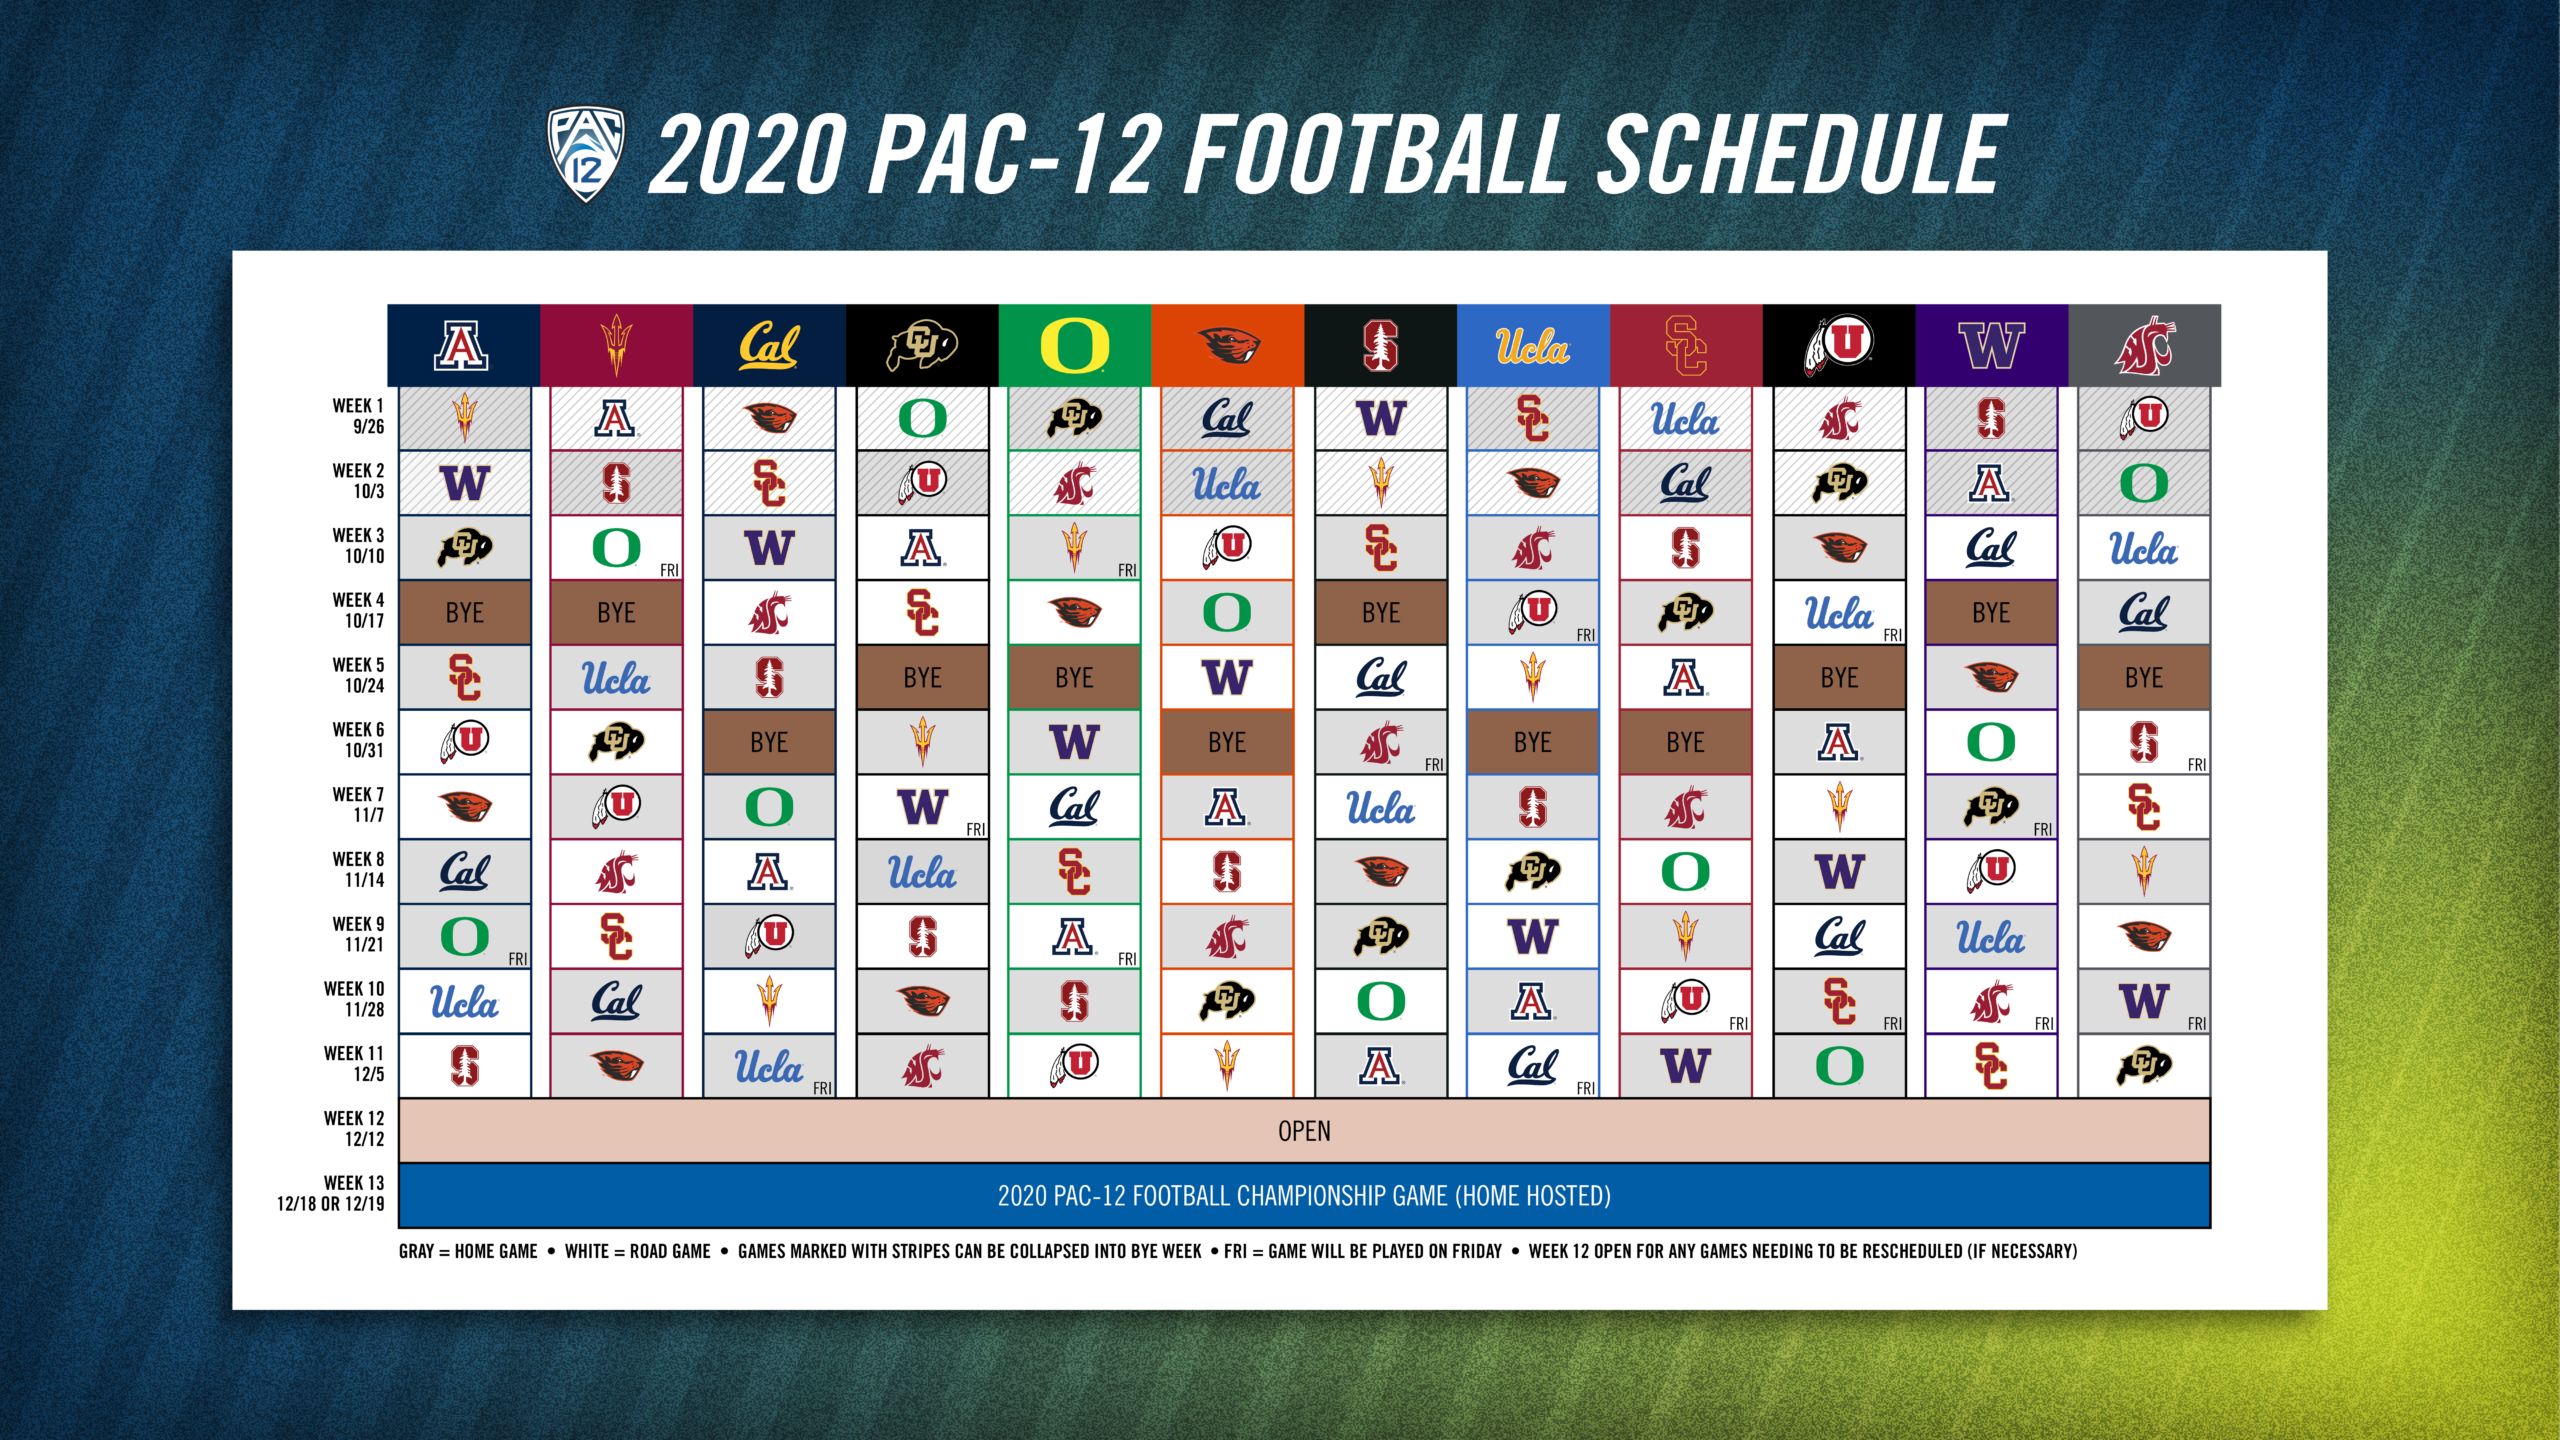 2020 Pac-12 Football Schedule: 10 Conference Games Only